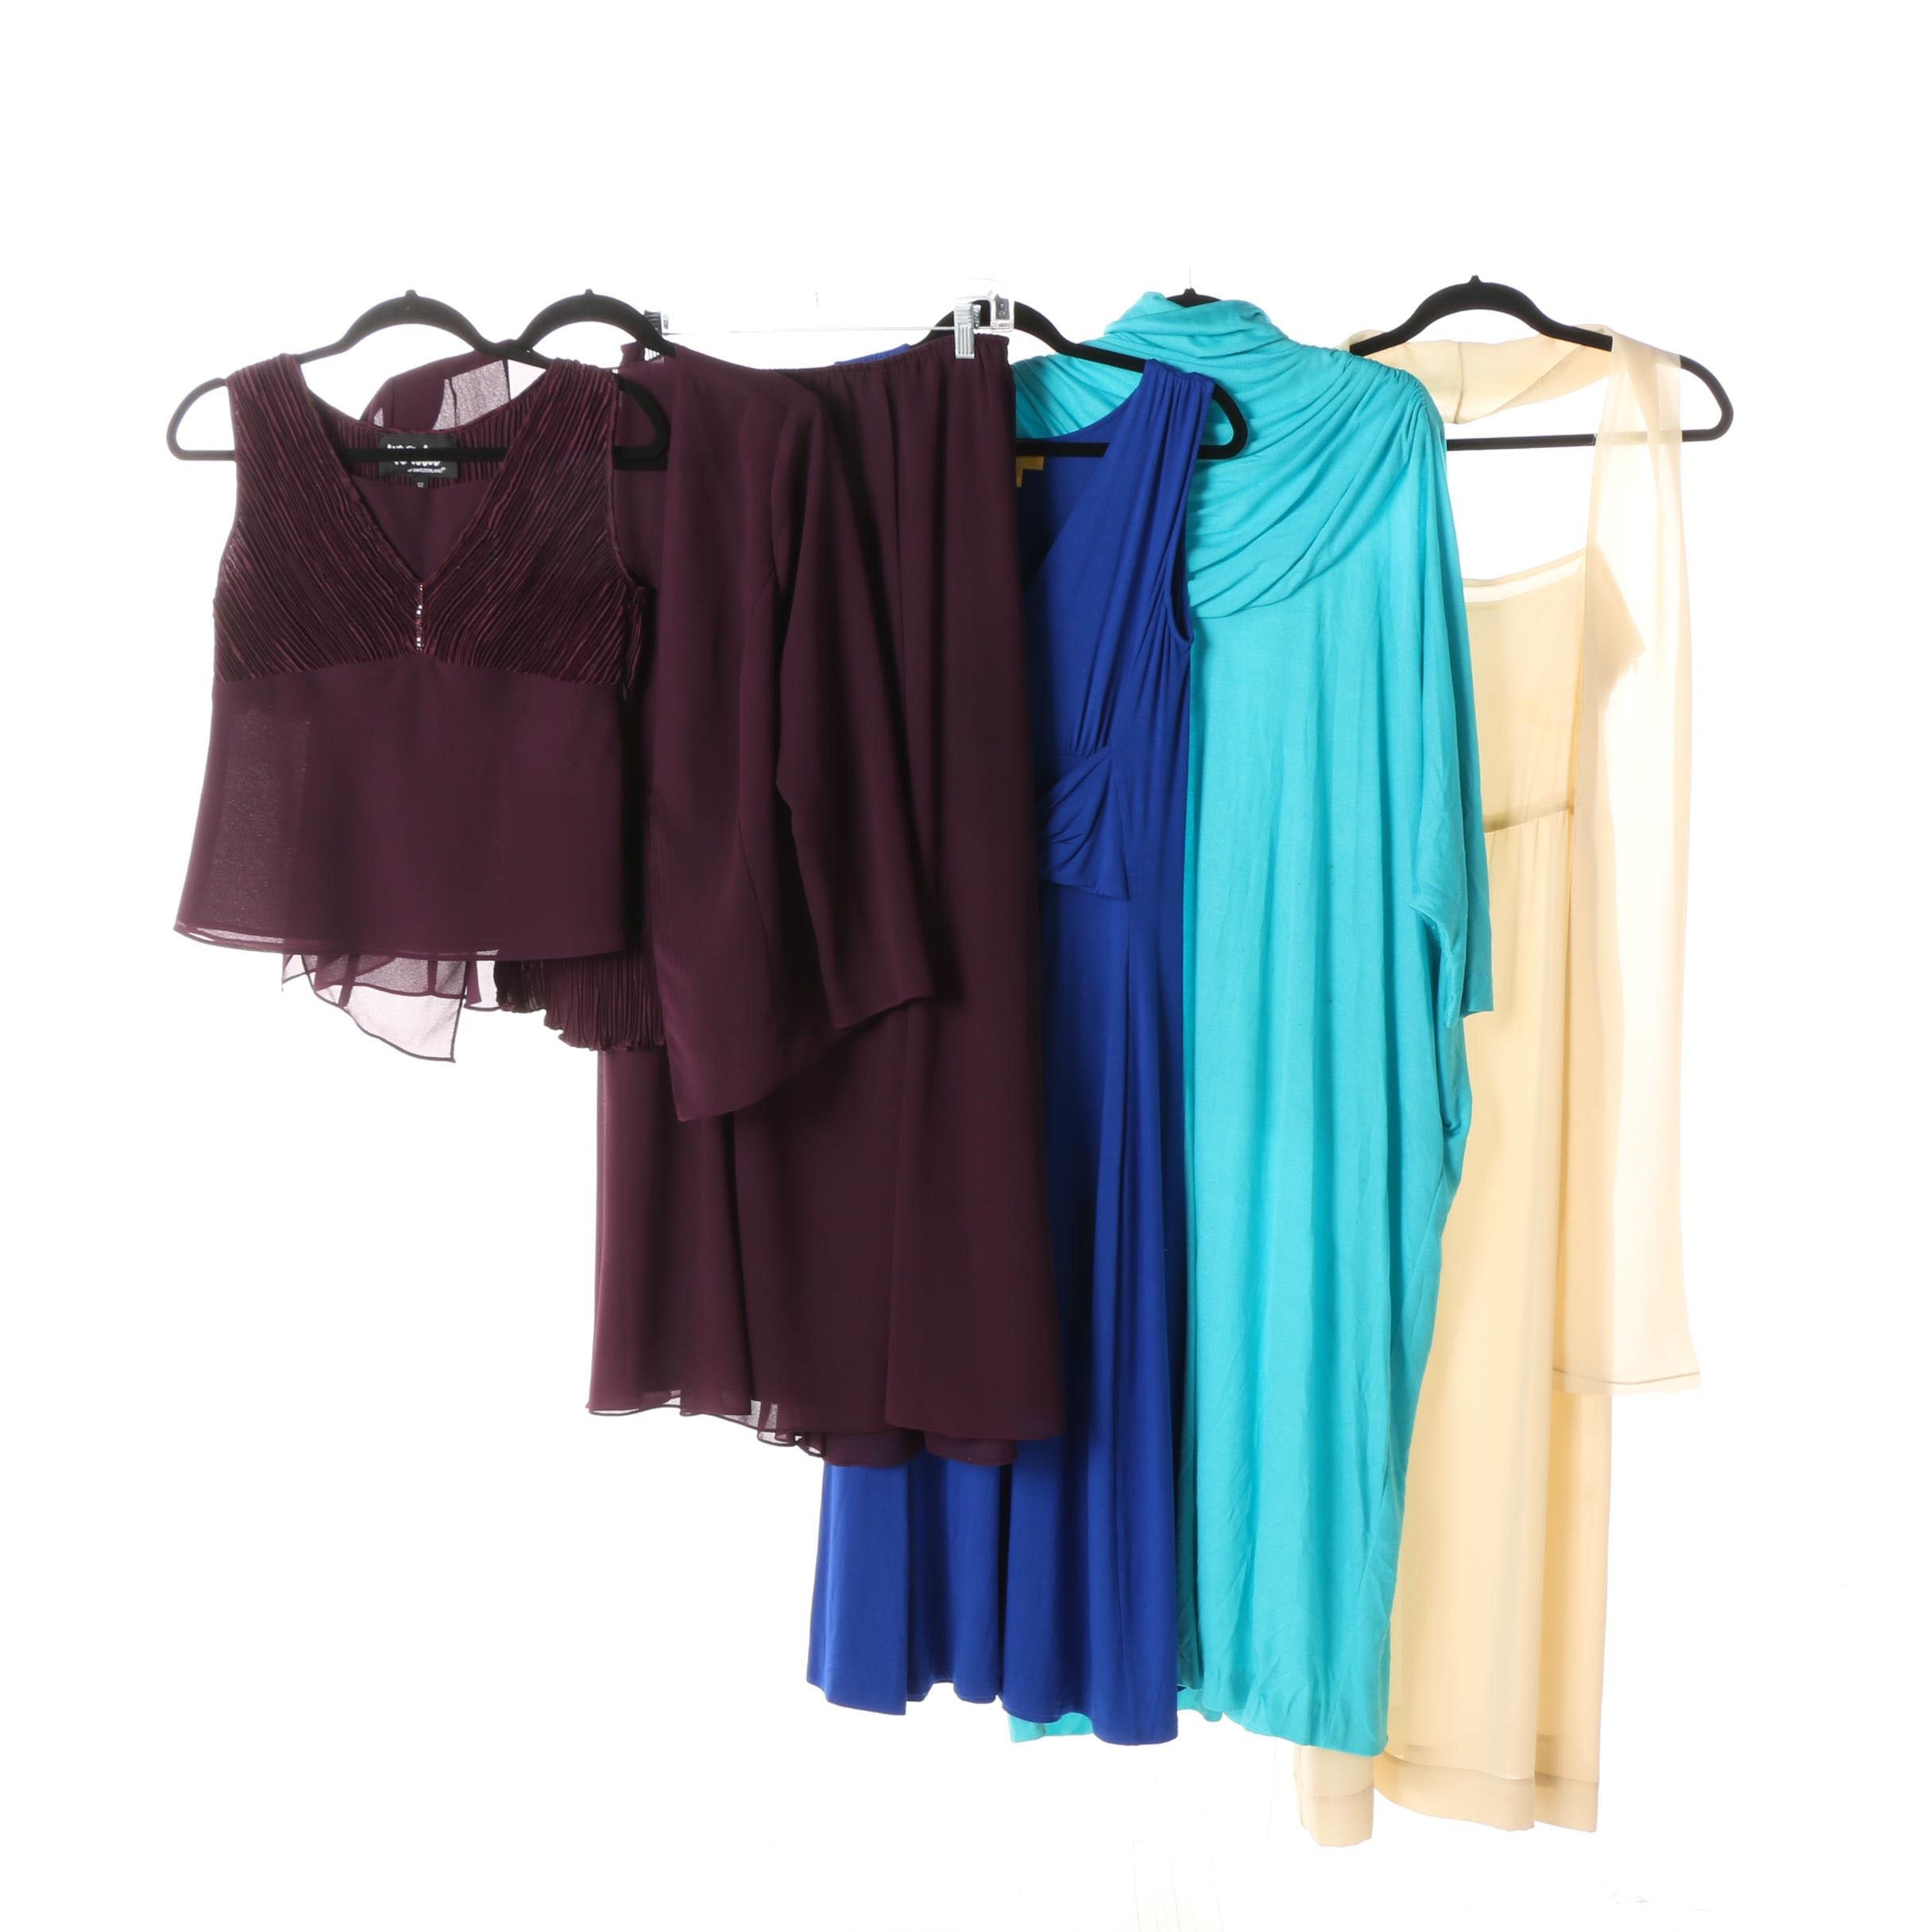 Women's Dresses and Skirt Set including Adele Simpson, Saks and Vintage